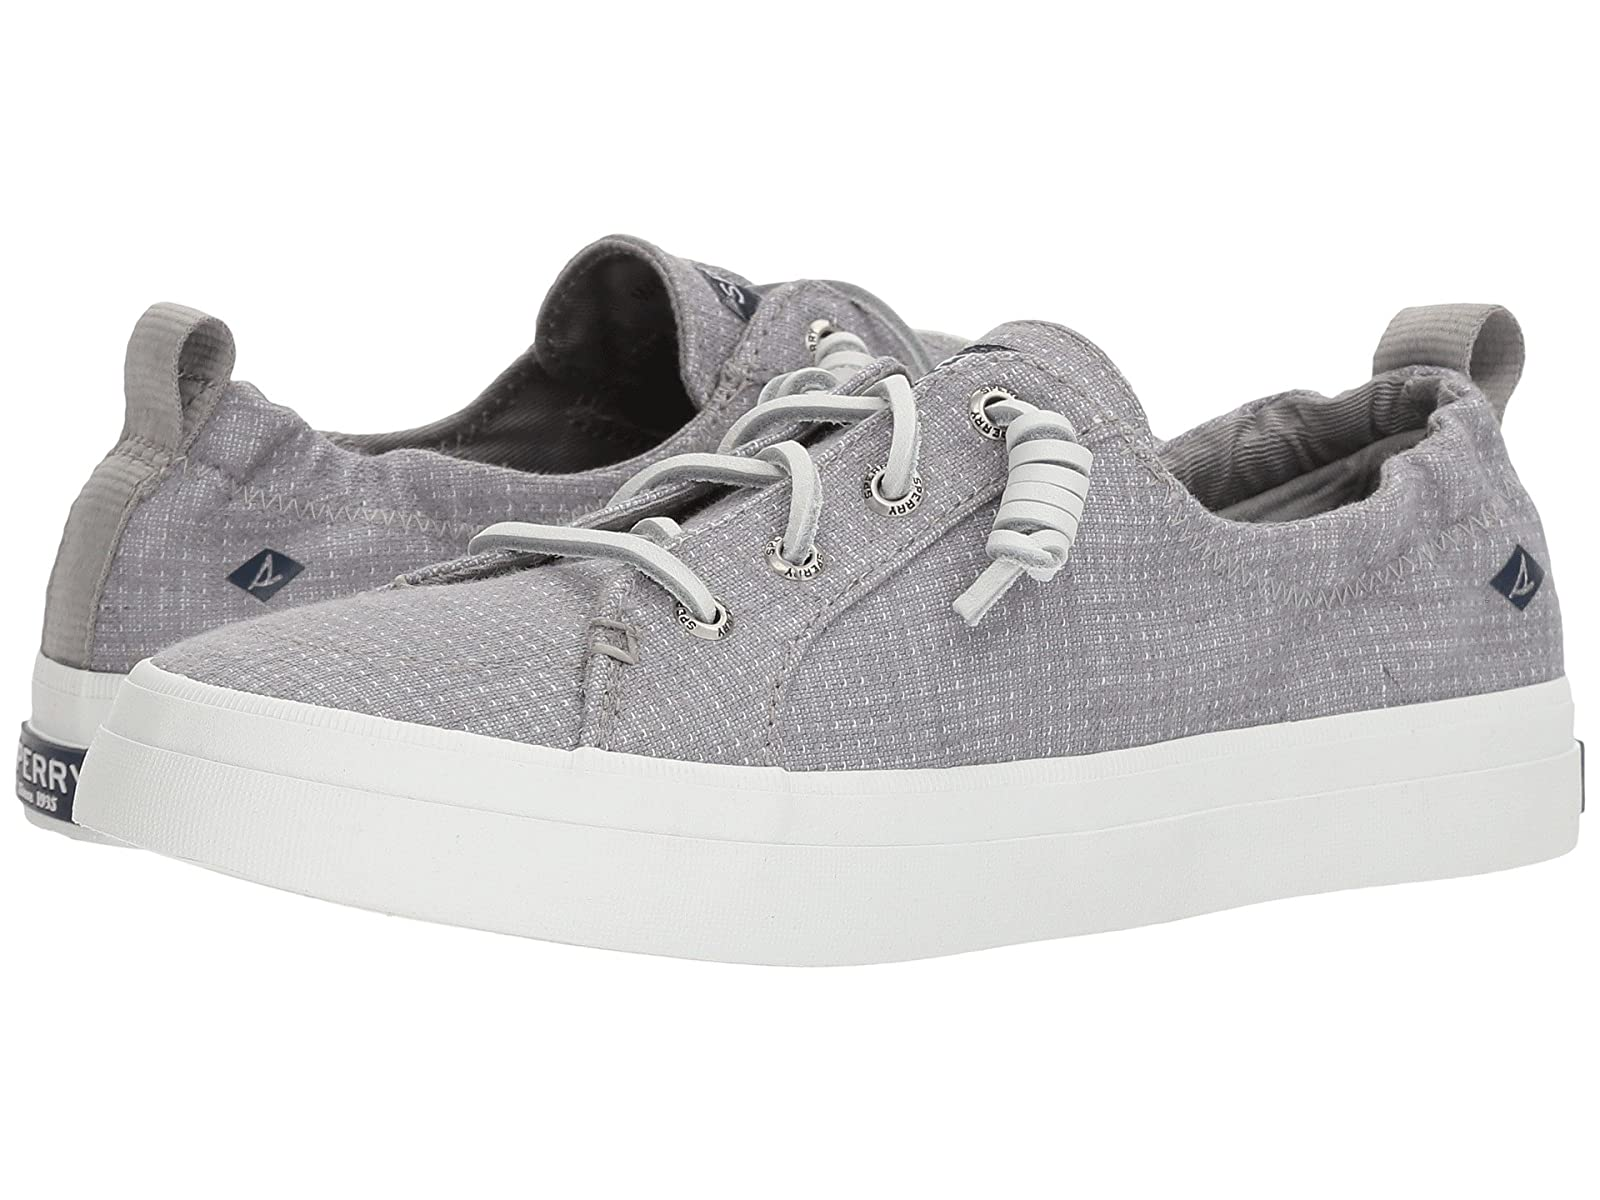 Sperry Crest EBB Two-ToneAtmospheric grades have affordable shoes